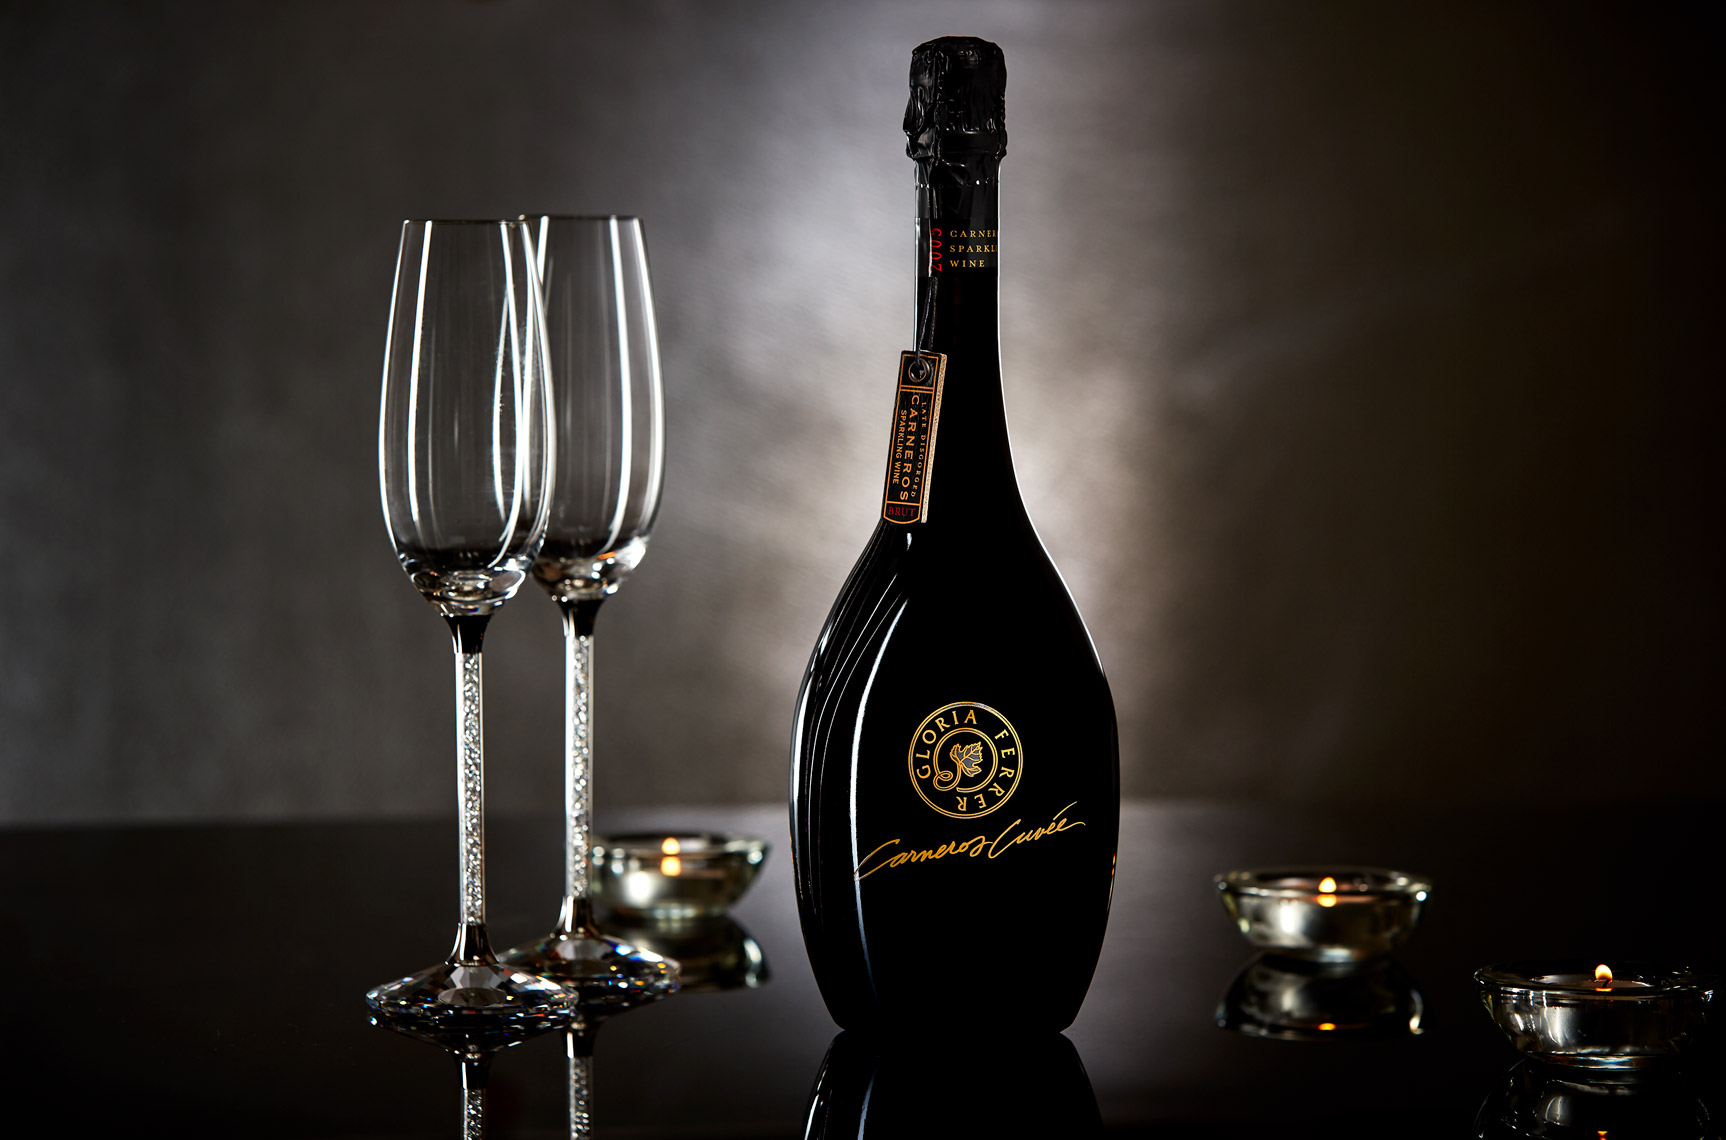 AlanCampbellPhotography, Cuvee from Gloria Ferrer